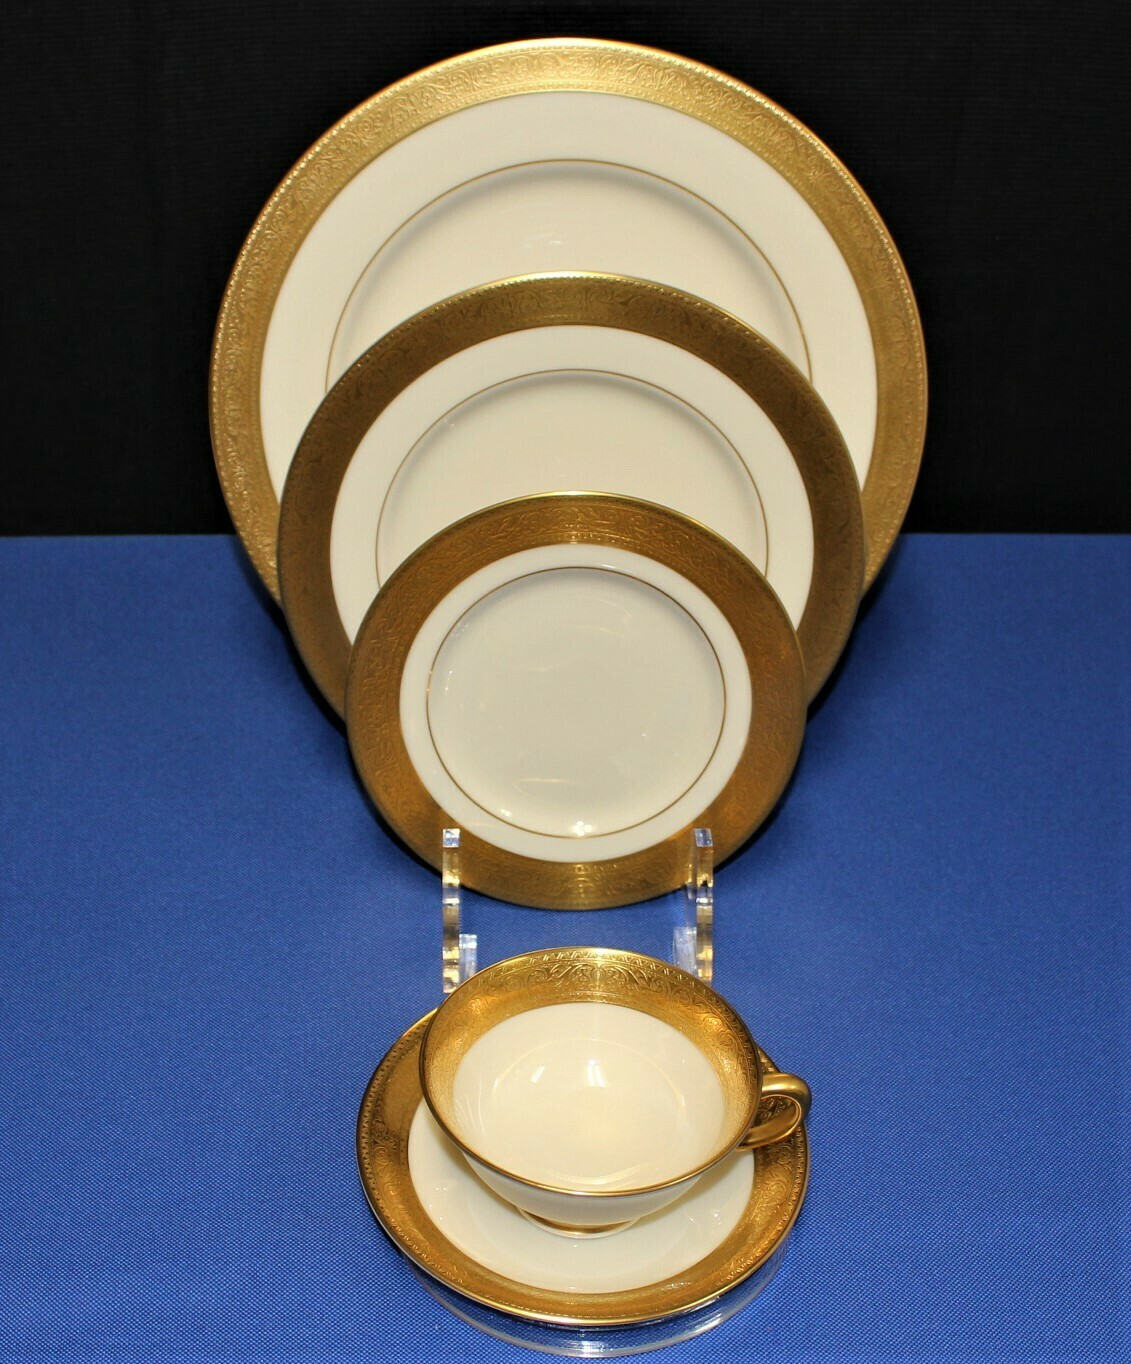 Lenox Westchester Presidential Gold Encrusted Band China 5-Piece Place Setting